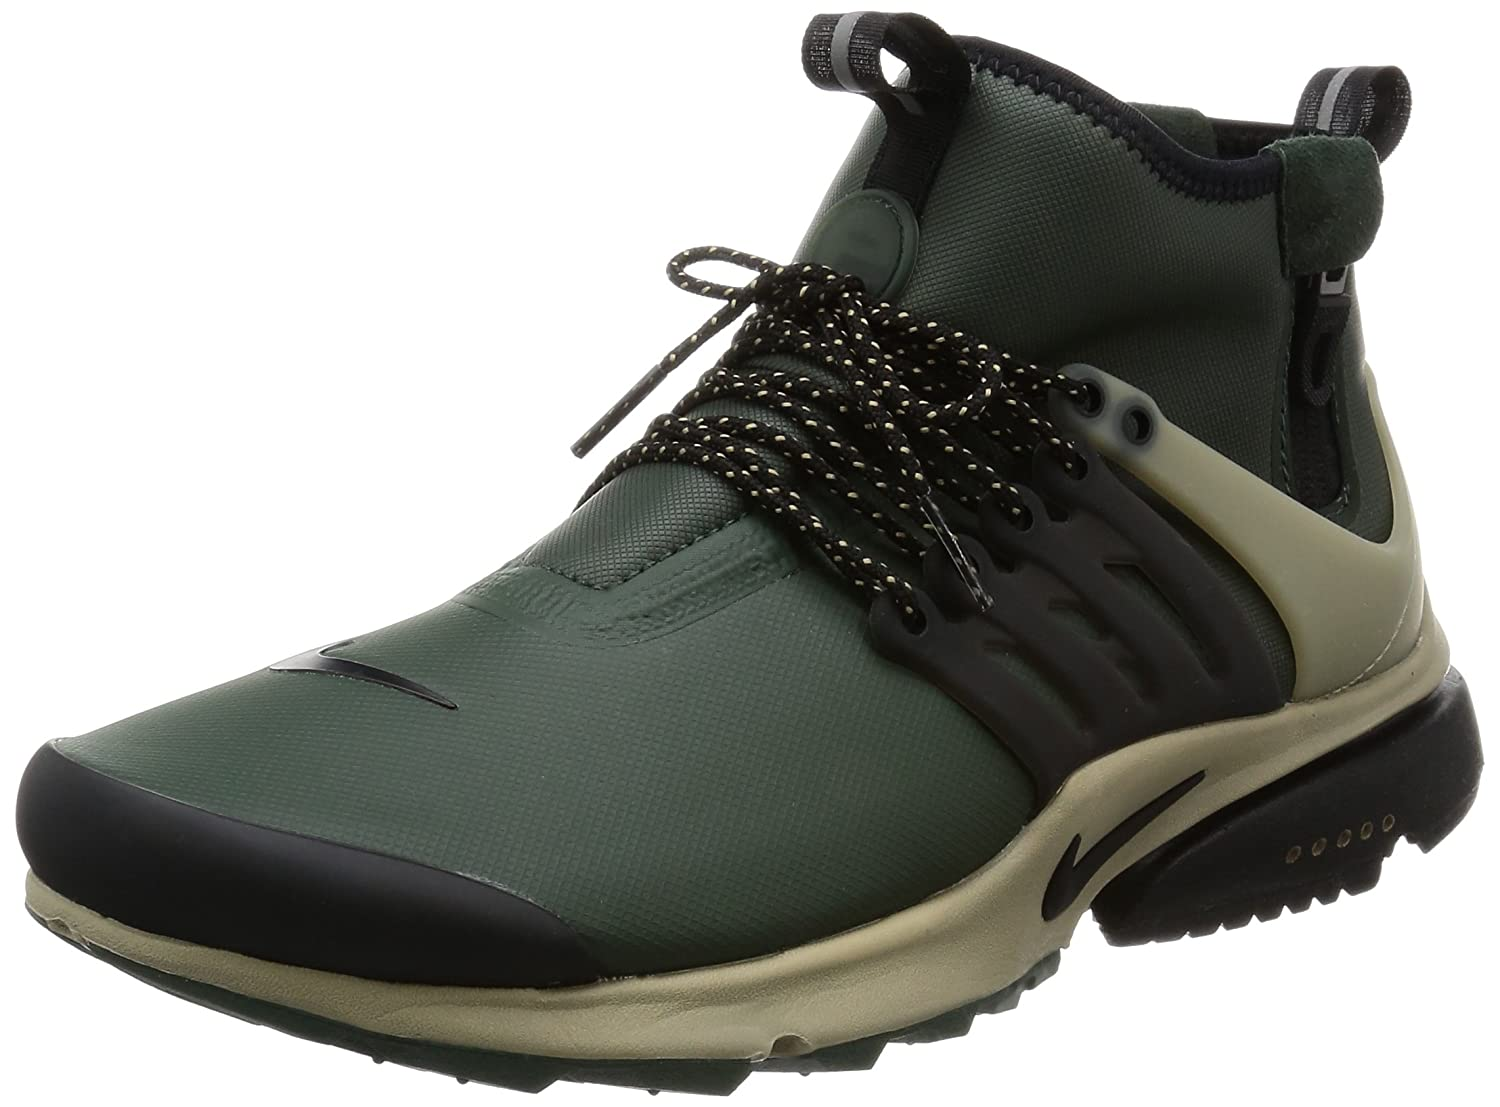 on sale a060d 4c5a0 Amazon.com  Nike Mens Air Presto Mid Utility Hight Top Lace Up Running  Sneaker  Road Running